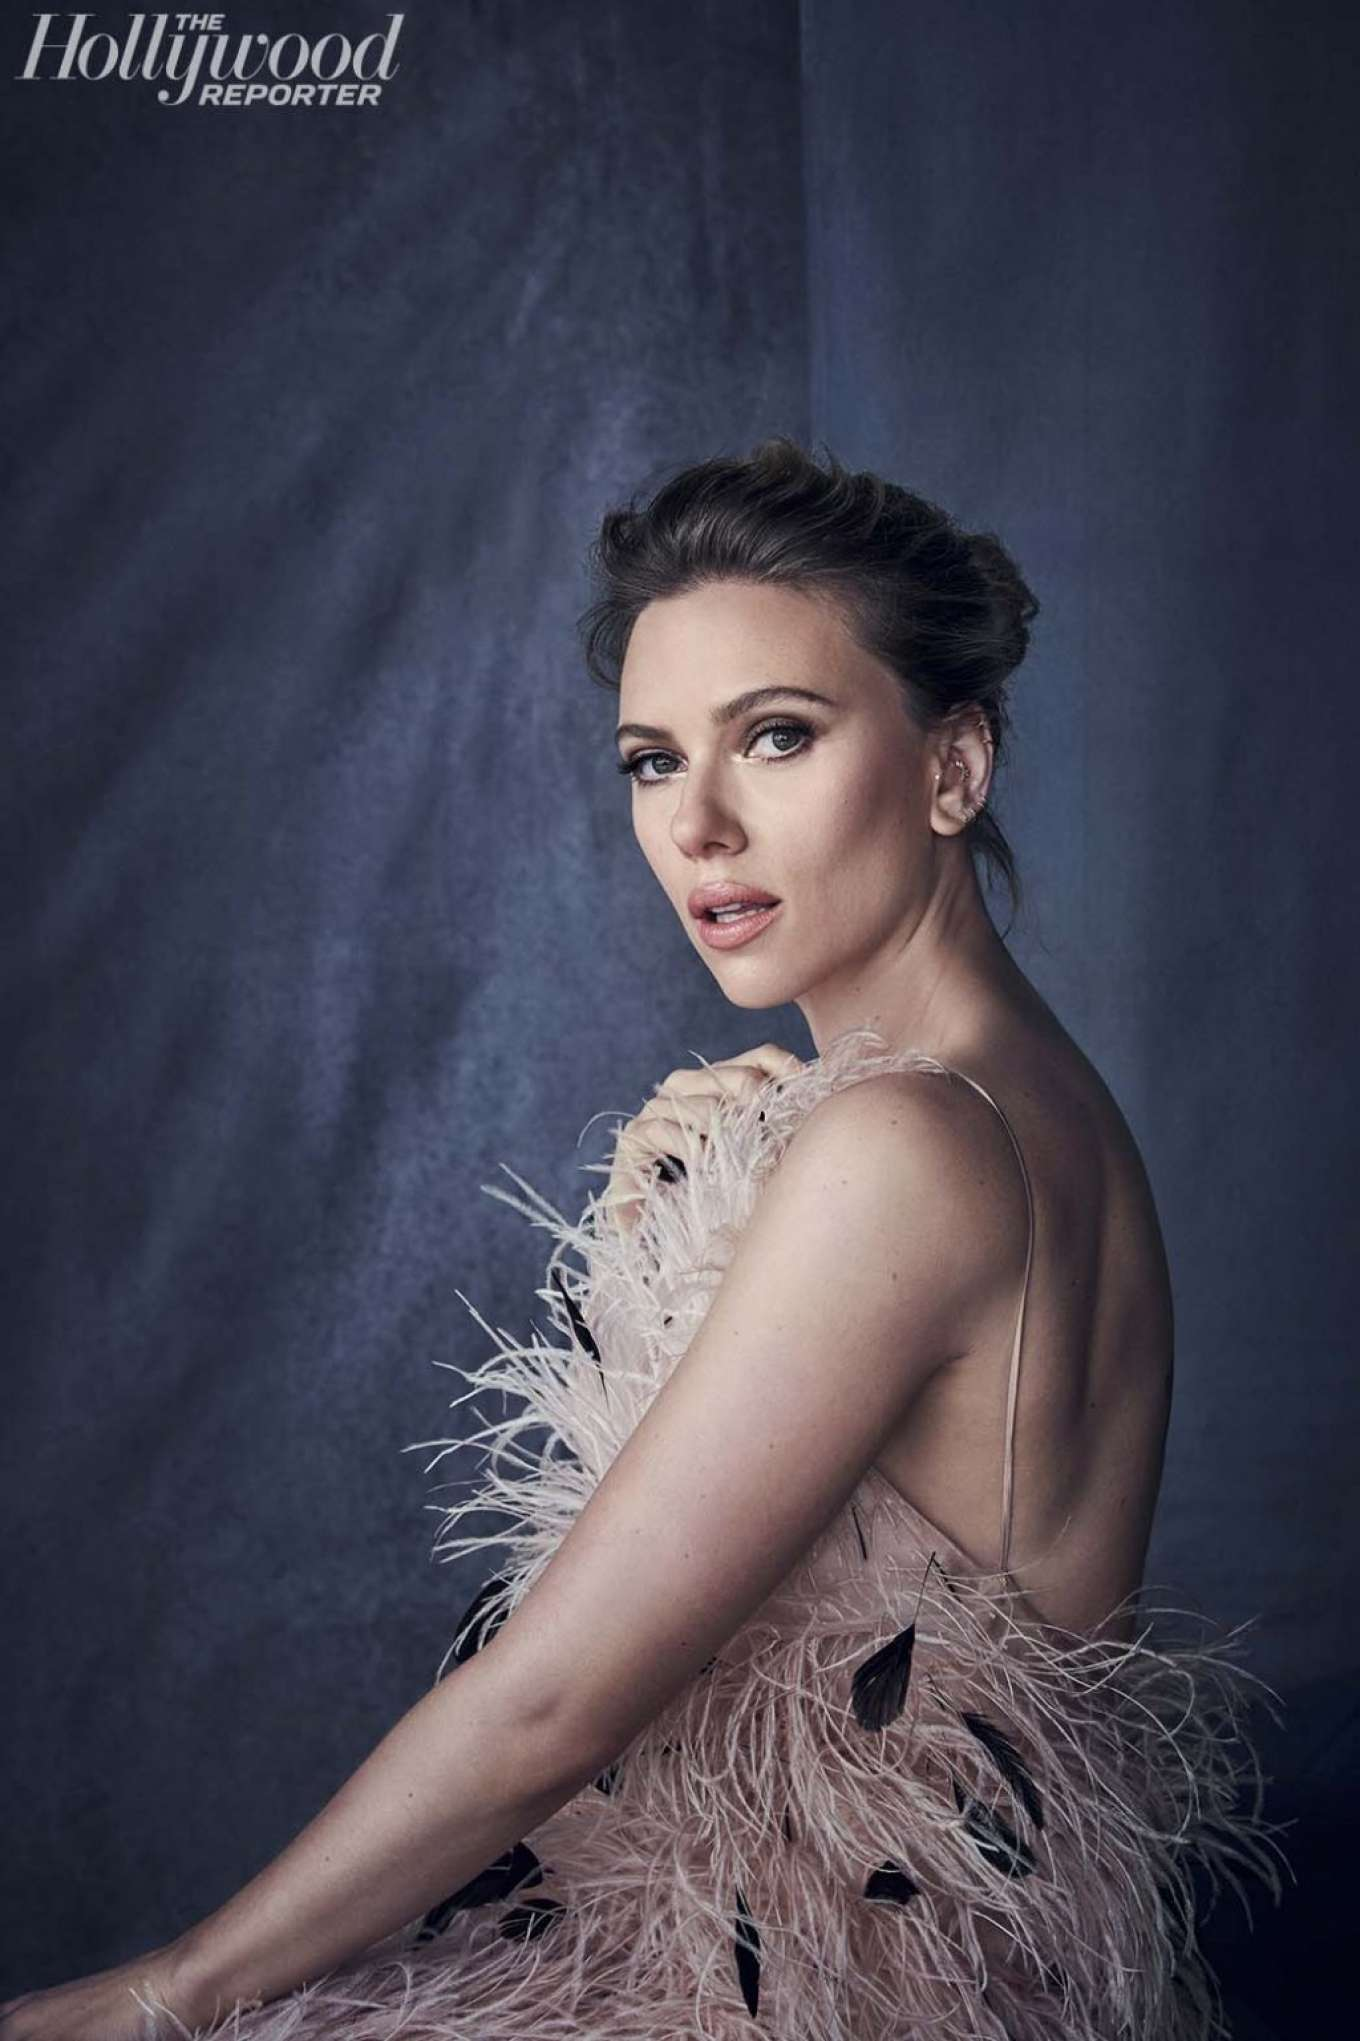 Scarlett Johansson - The Hollywood Reporter Magazine (November 2019)